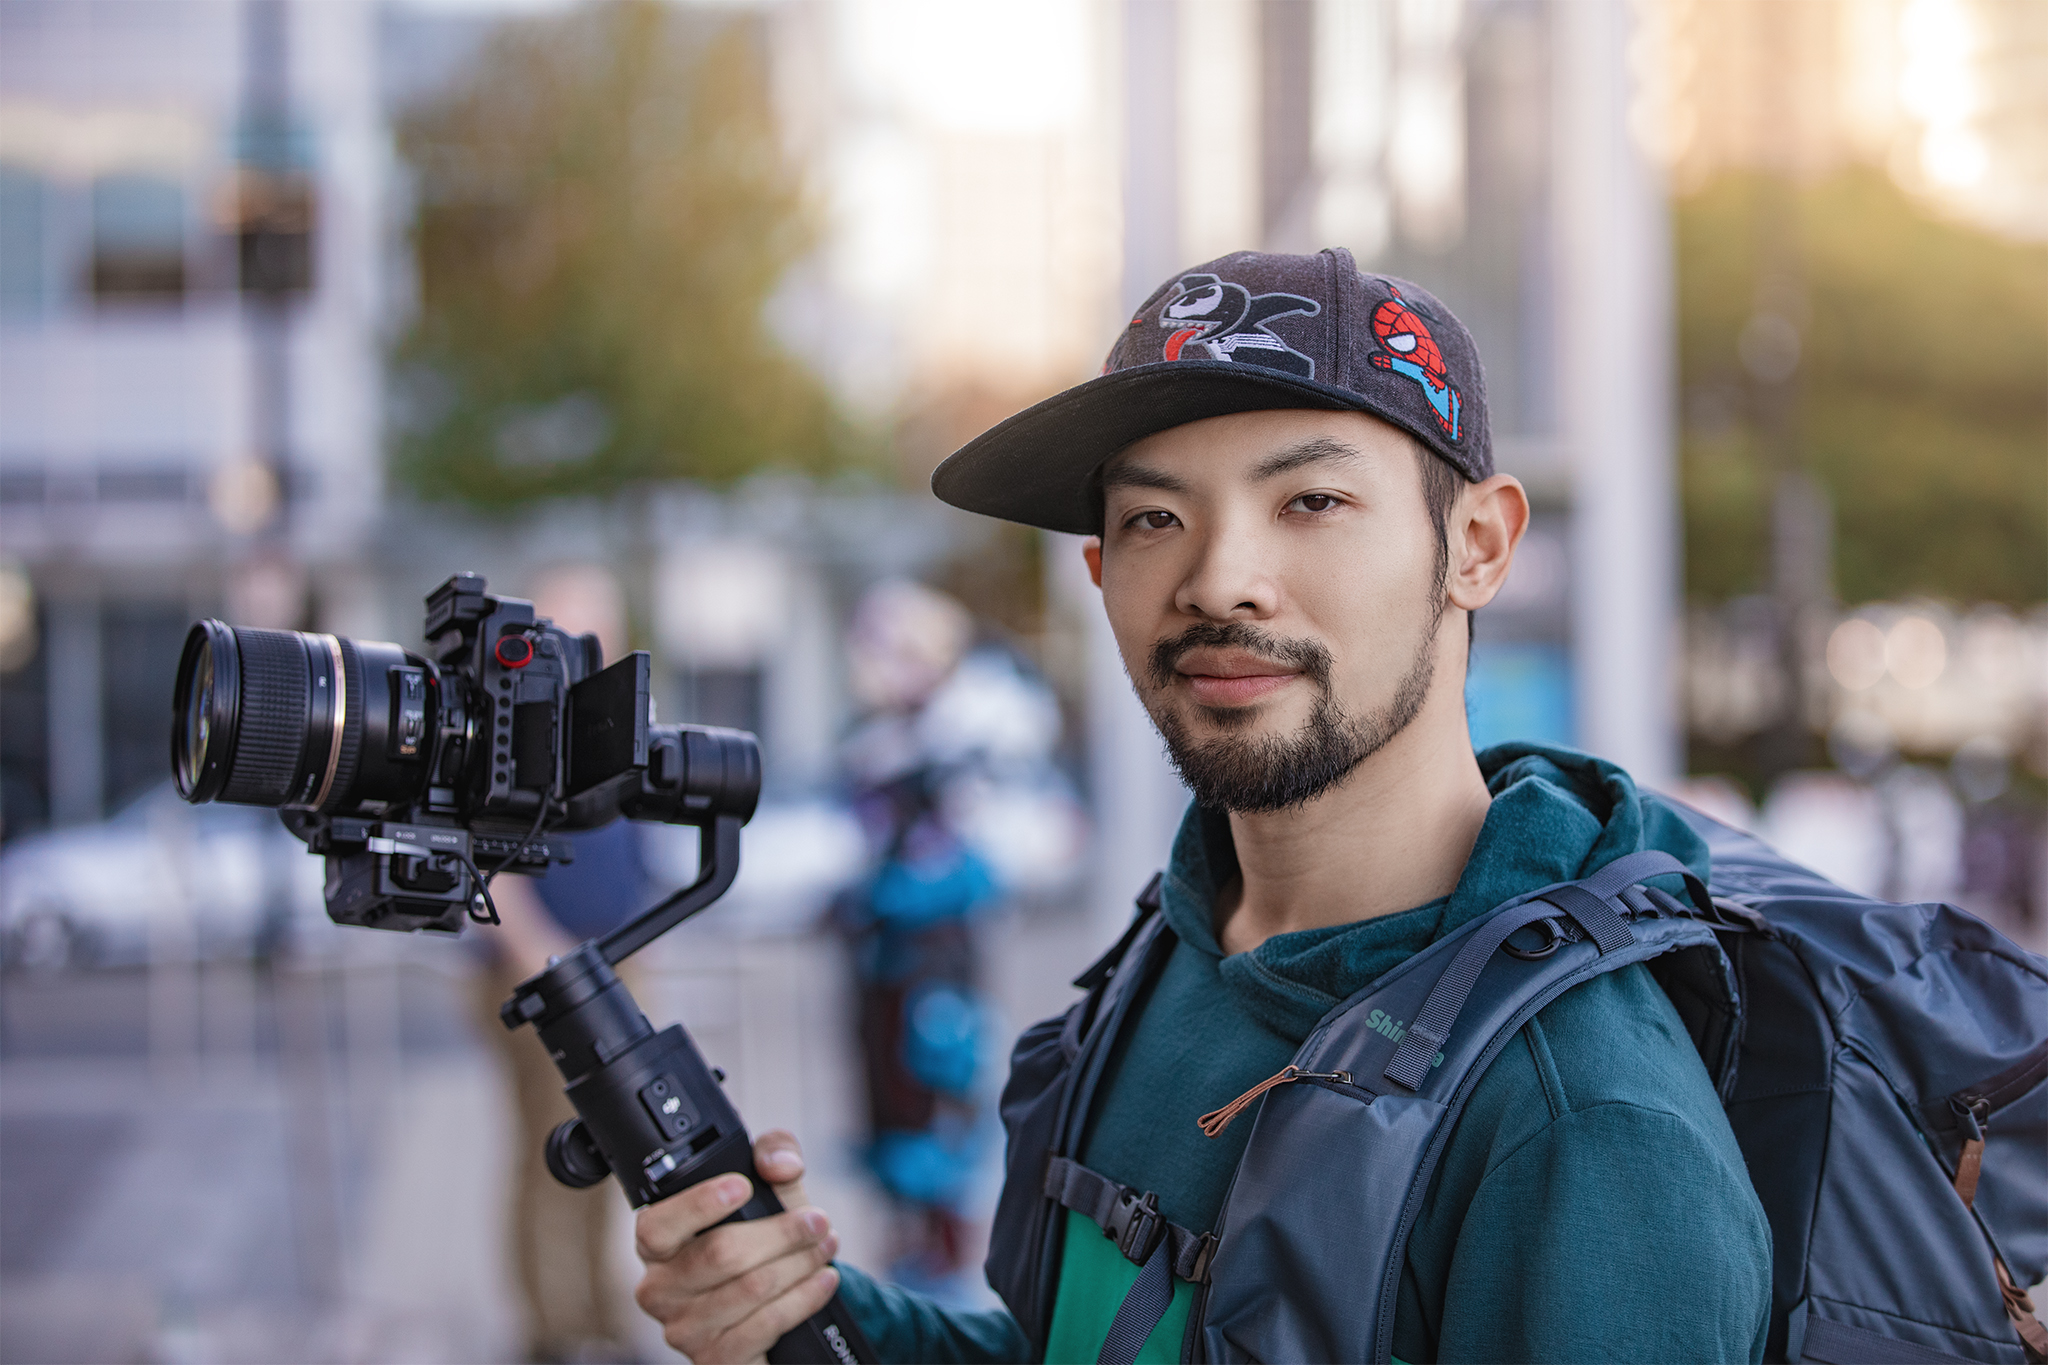 Videography - More than just a simple Video Producer, Joel is a cinematographer, director, editor, colorist, producer, and writer. With a breath of experience from shooting long form meetings, weddings, client ads, and collaborating with various media agencies in Vancouver.